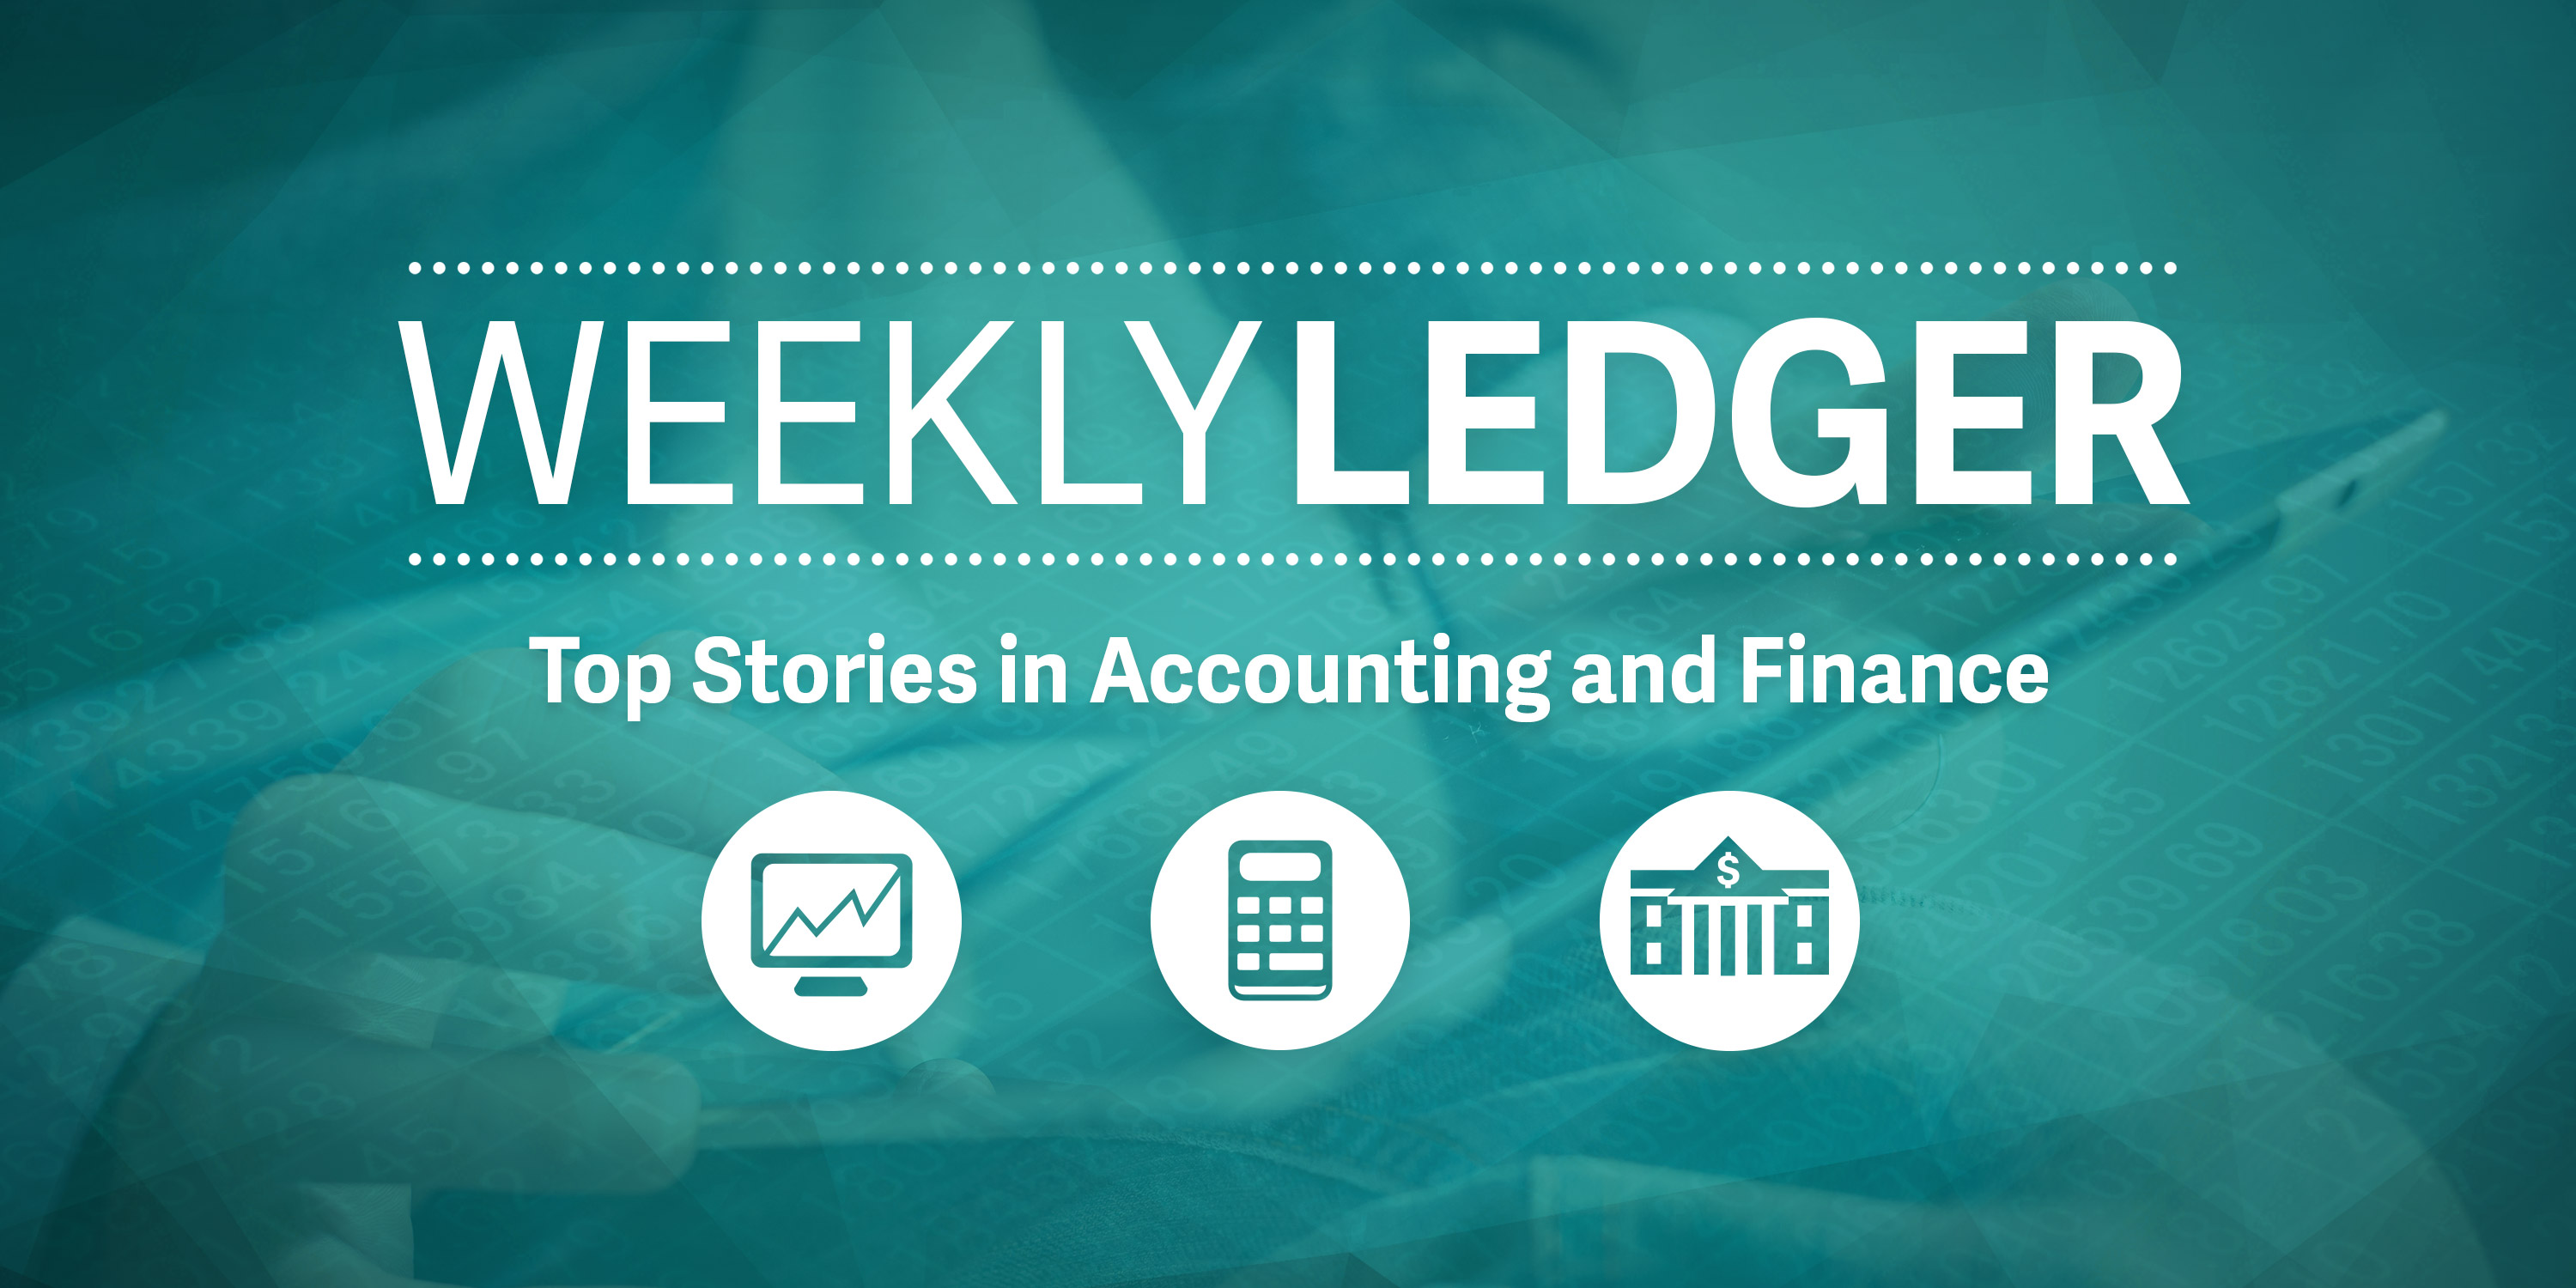 ledger 68 top stories in accounting & finance for the week of April 2